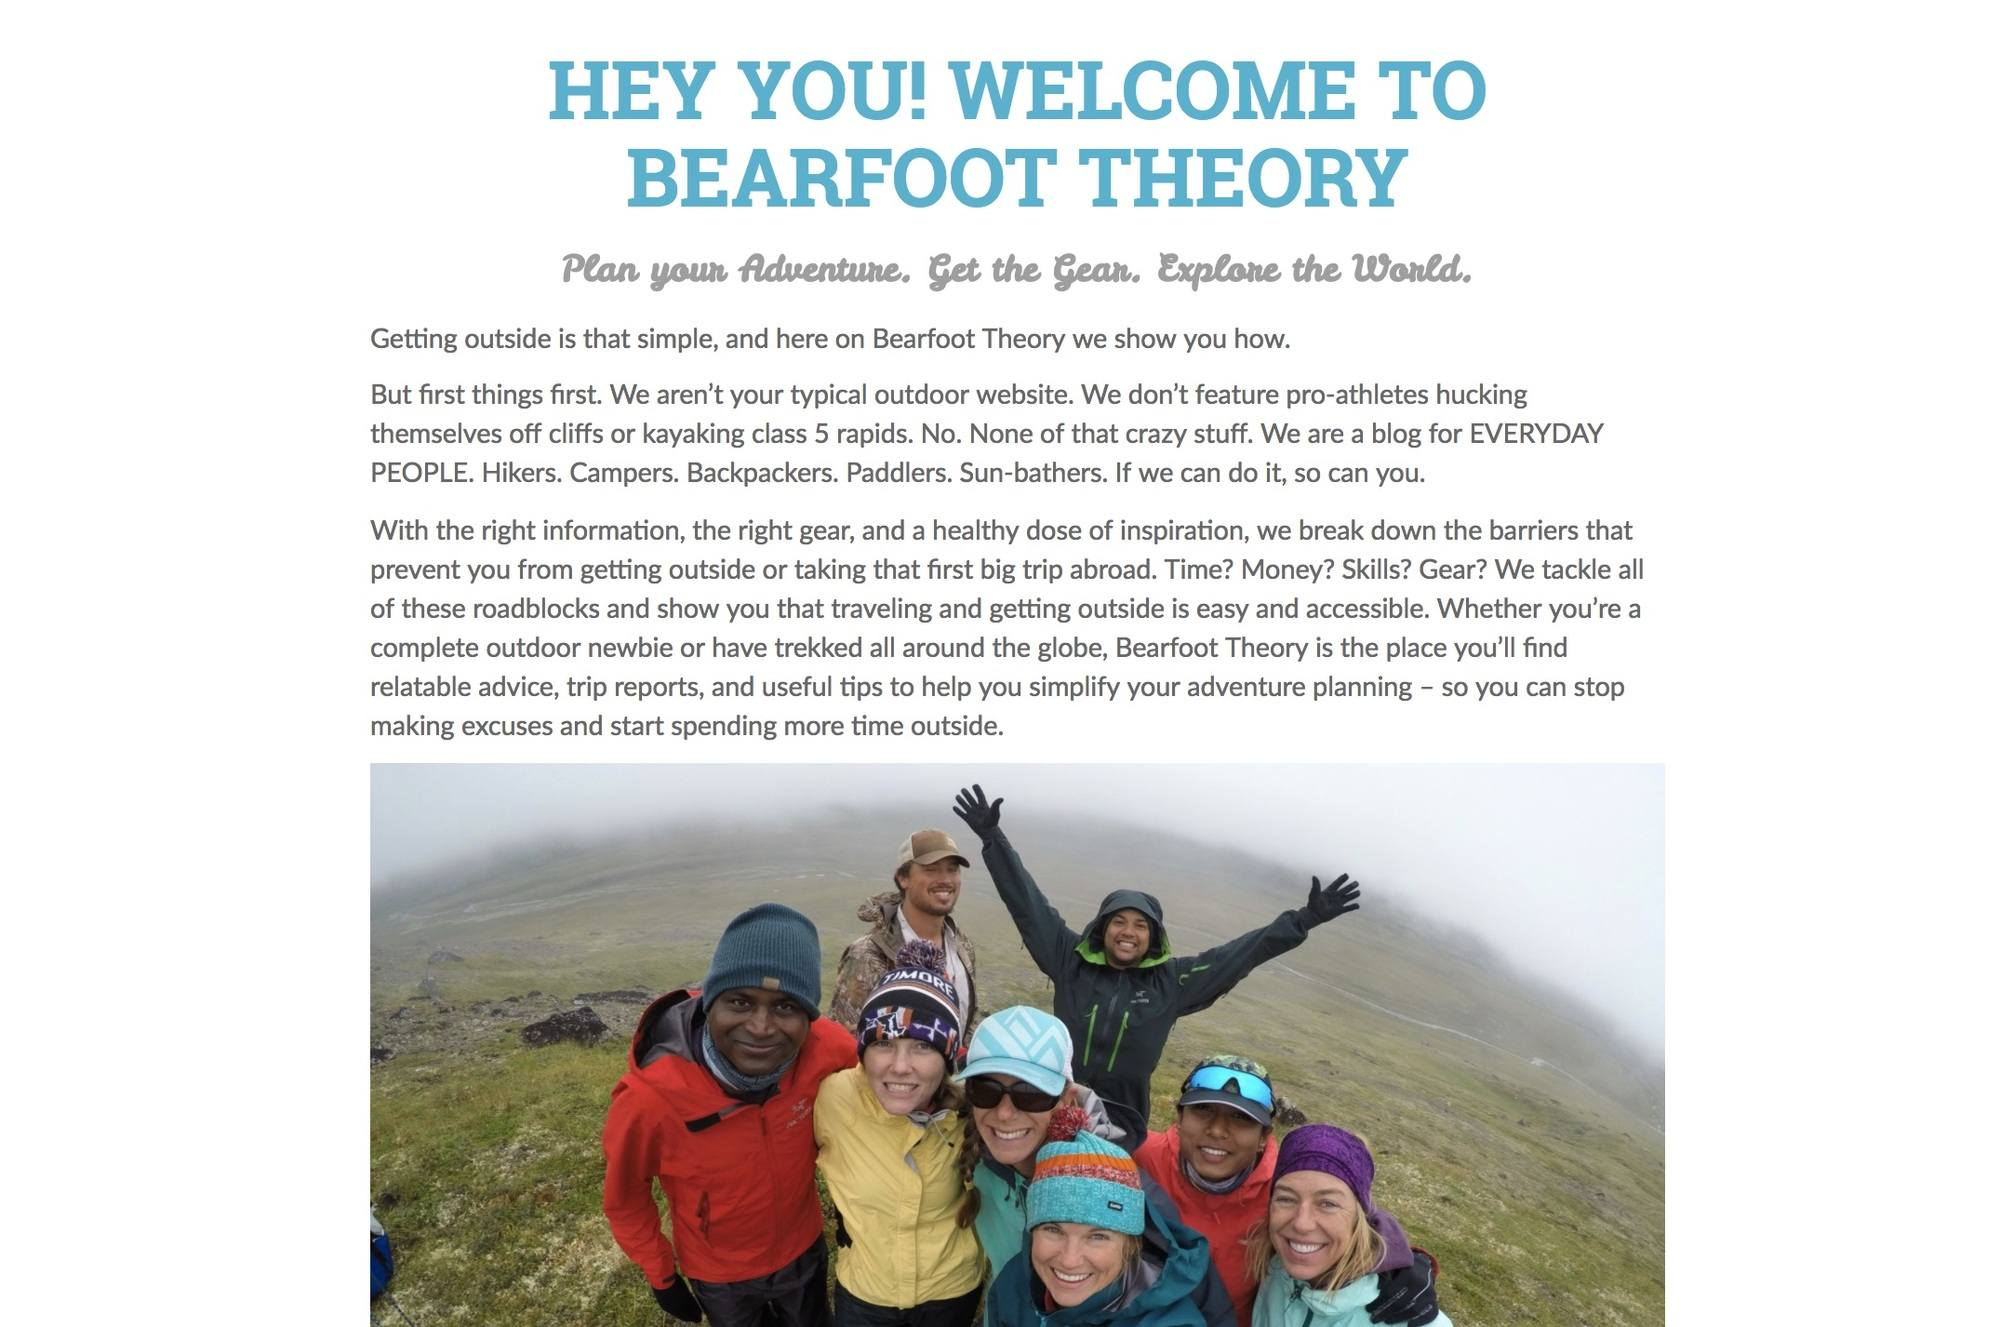 Bearfoot Theory About page // Want to start an outdoor travel blog? This step-by-step guide walks you through choosing a domain name, getting started on social, launching a wordpress site & more.